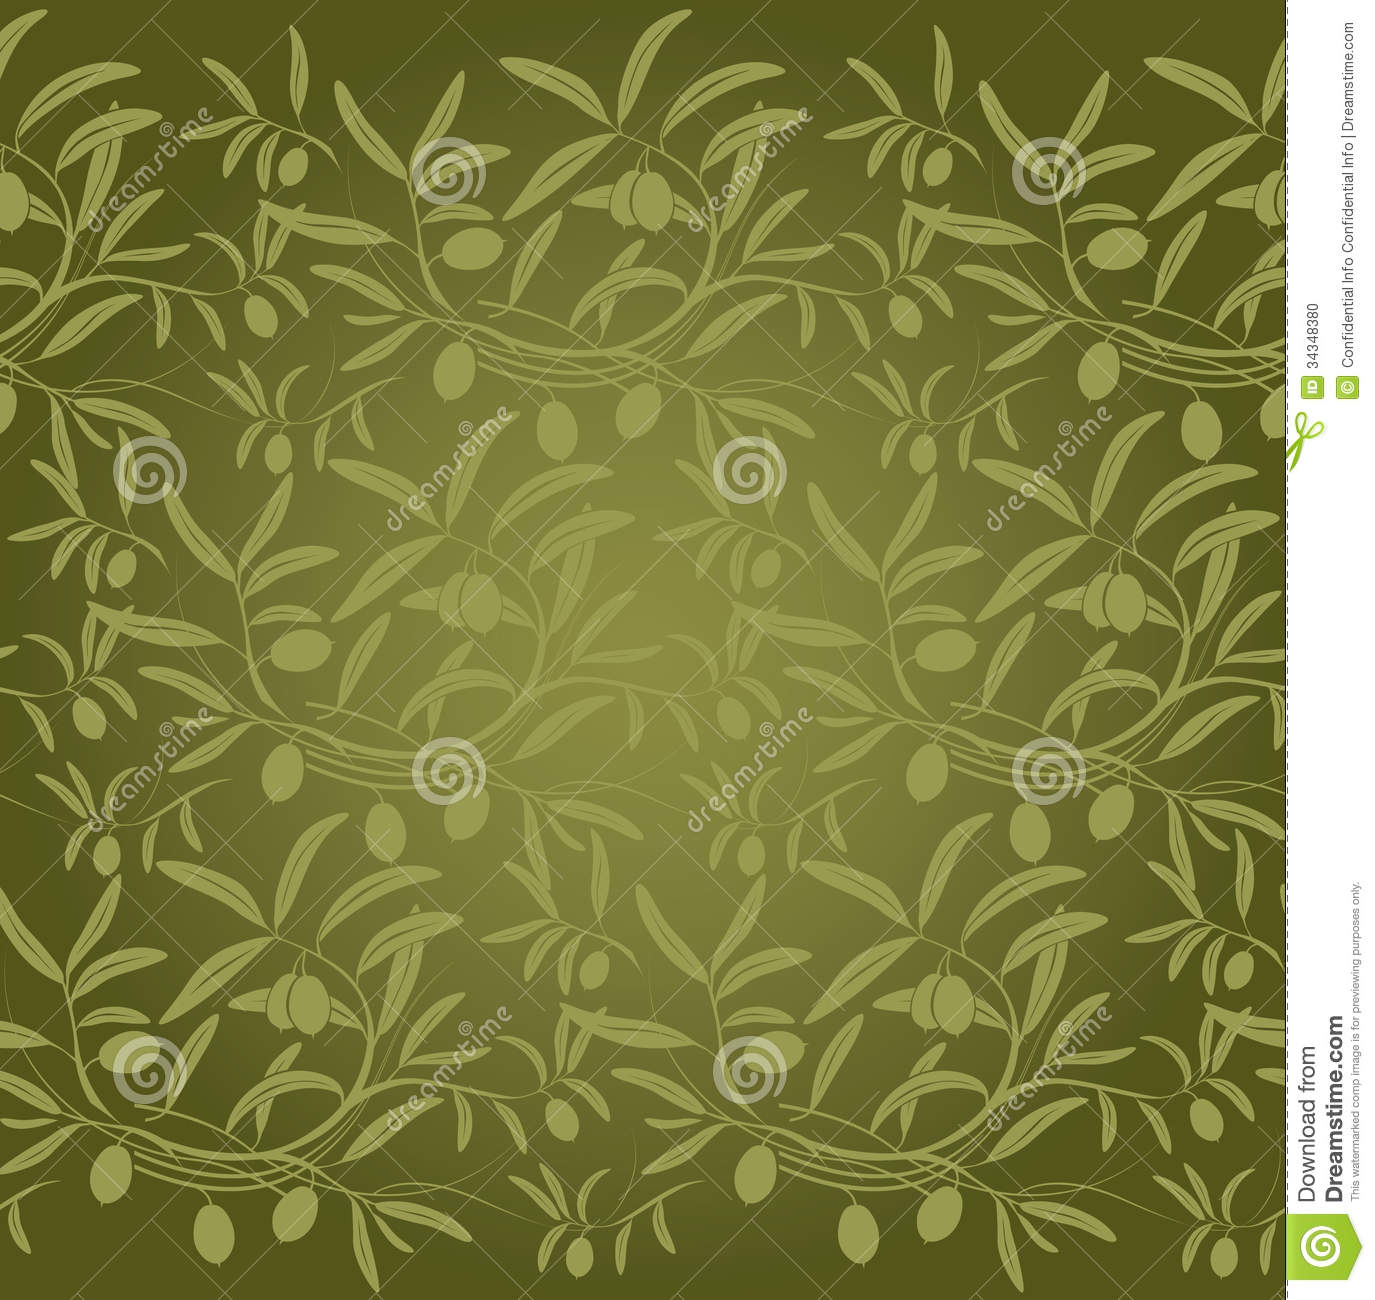 green olive designs with wallpapers - photo #22